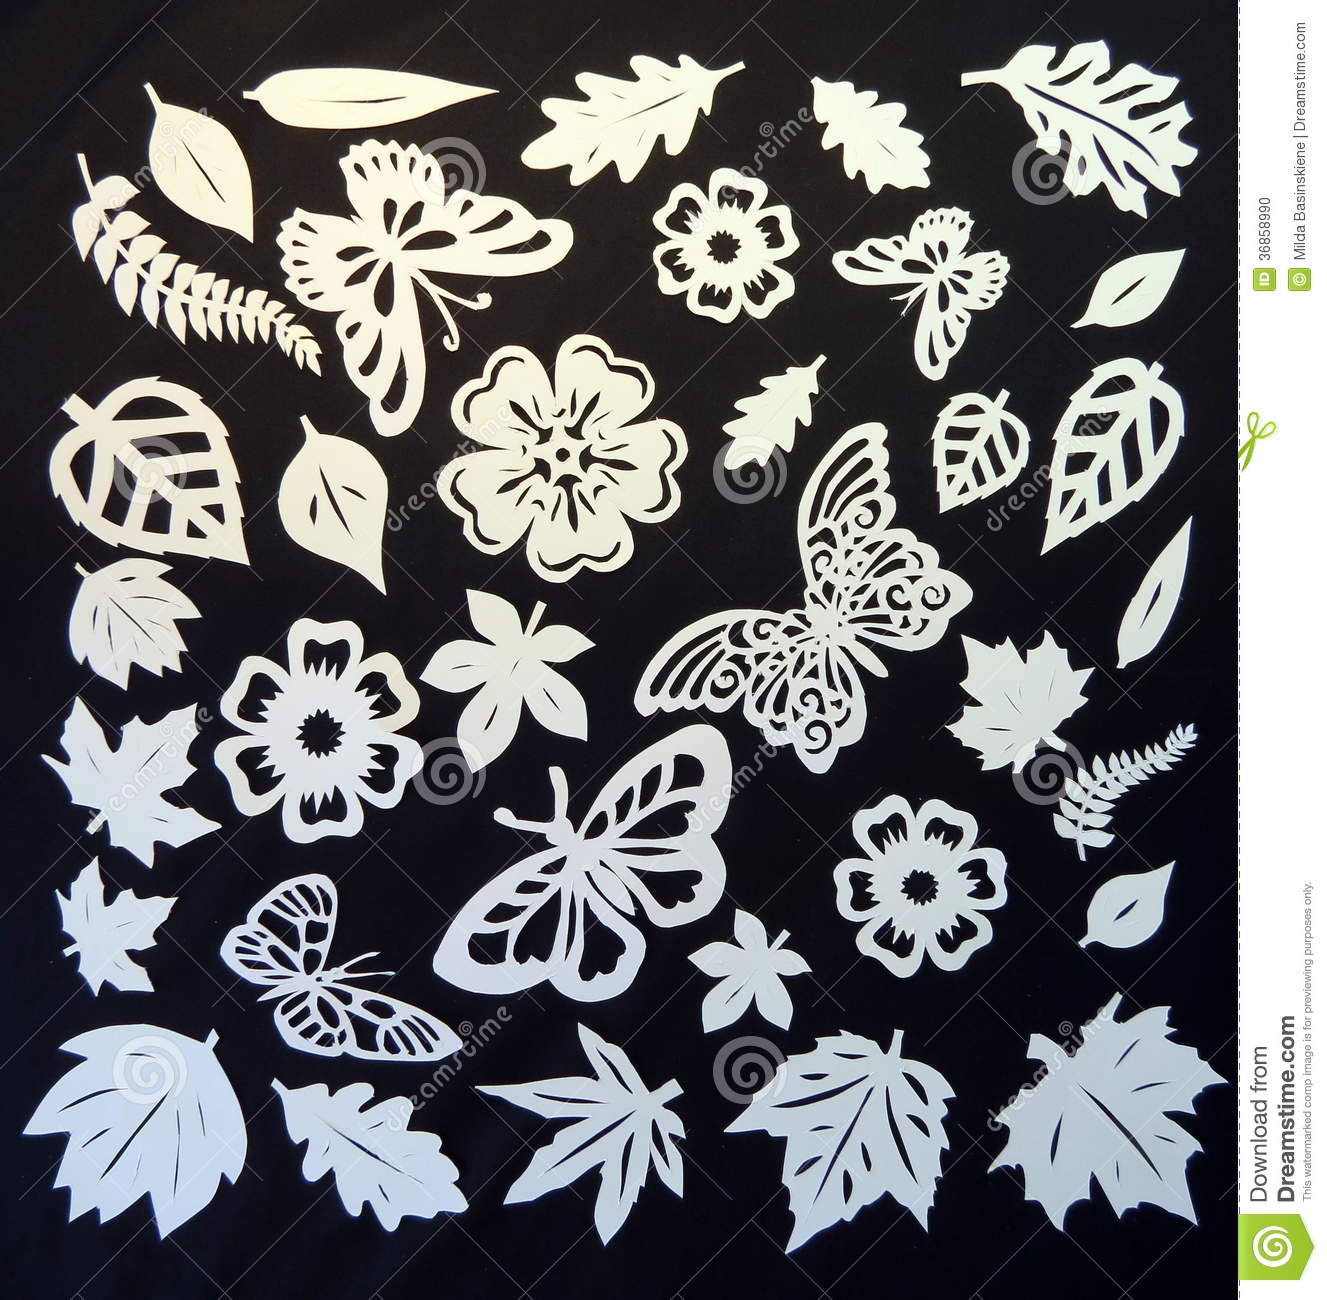 Butterflies leaves and flowers pattern paper cutting stock photo download butterflies leaves and flowers pattern paper cutting stock photo image of mightylinksfo